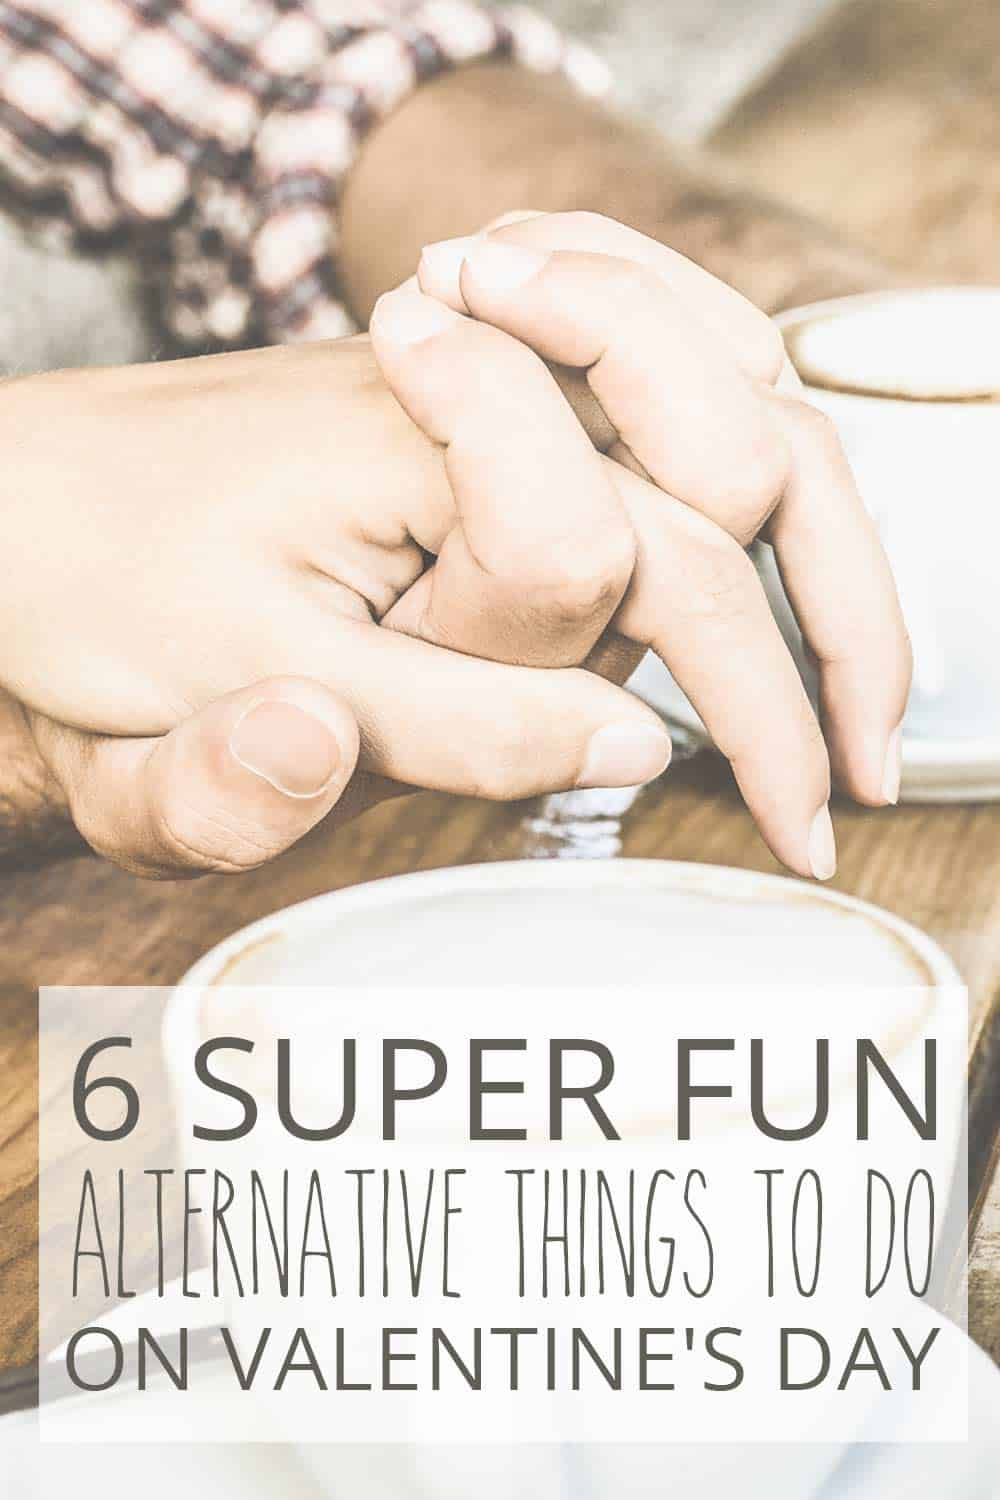 6 Super Fun Alternative Things To Do On Valentine's Day